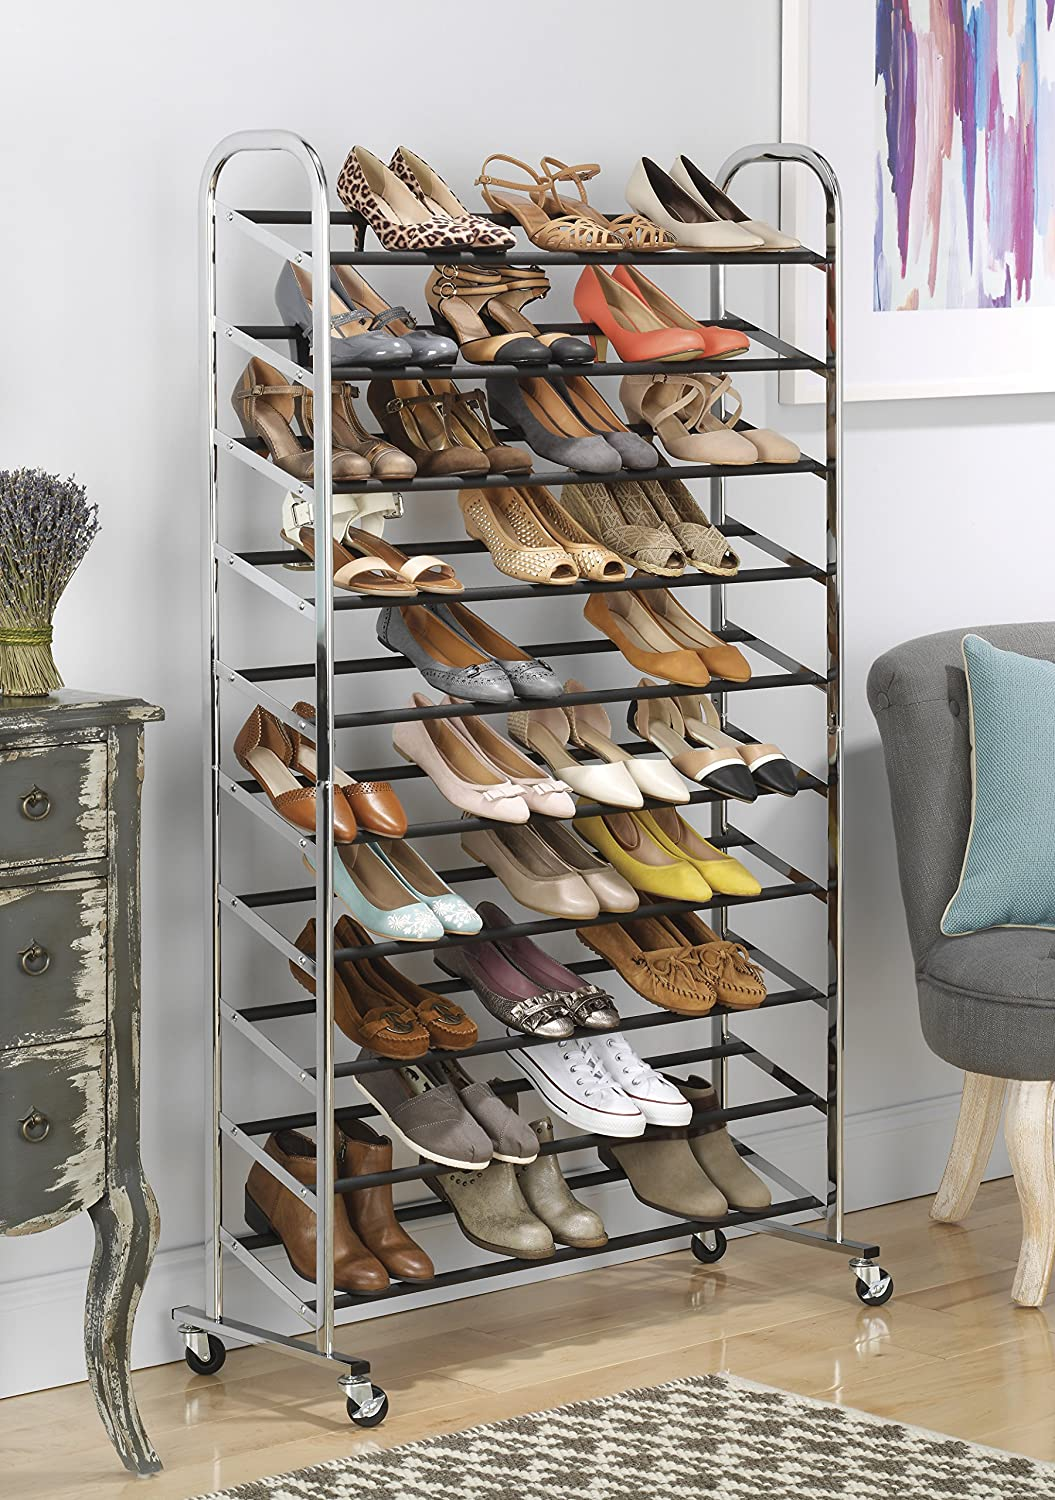 Nice Amazon.com: Whitmor 10 Tier Shoe Tower   50 Pair   Rolling Shoe Rack With  Locking Wheels   Chrome: Home U0026 Kitchen